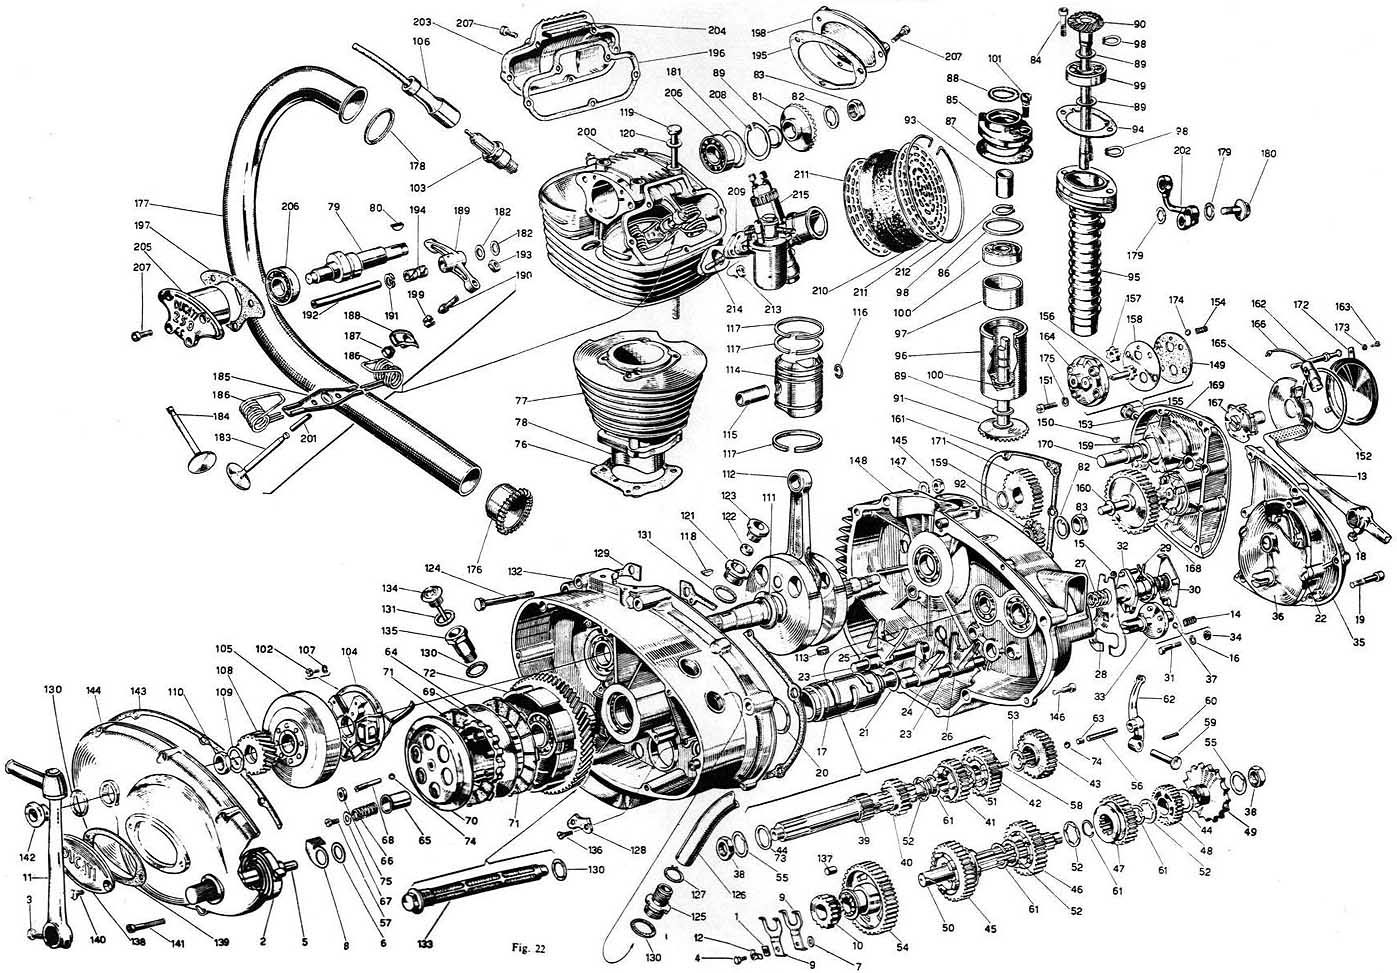 ducati engine schematic cutaway diagrams motorcycle engine ducati engine diagrams [ 1397 x 973 Pixel ]